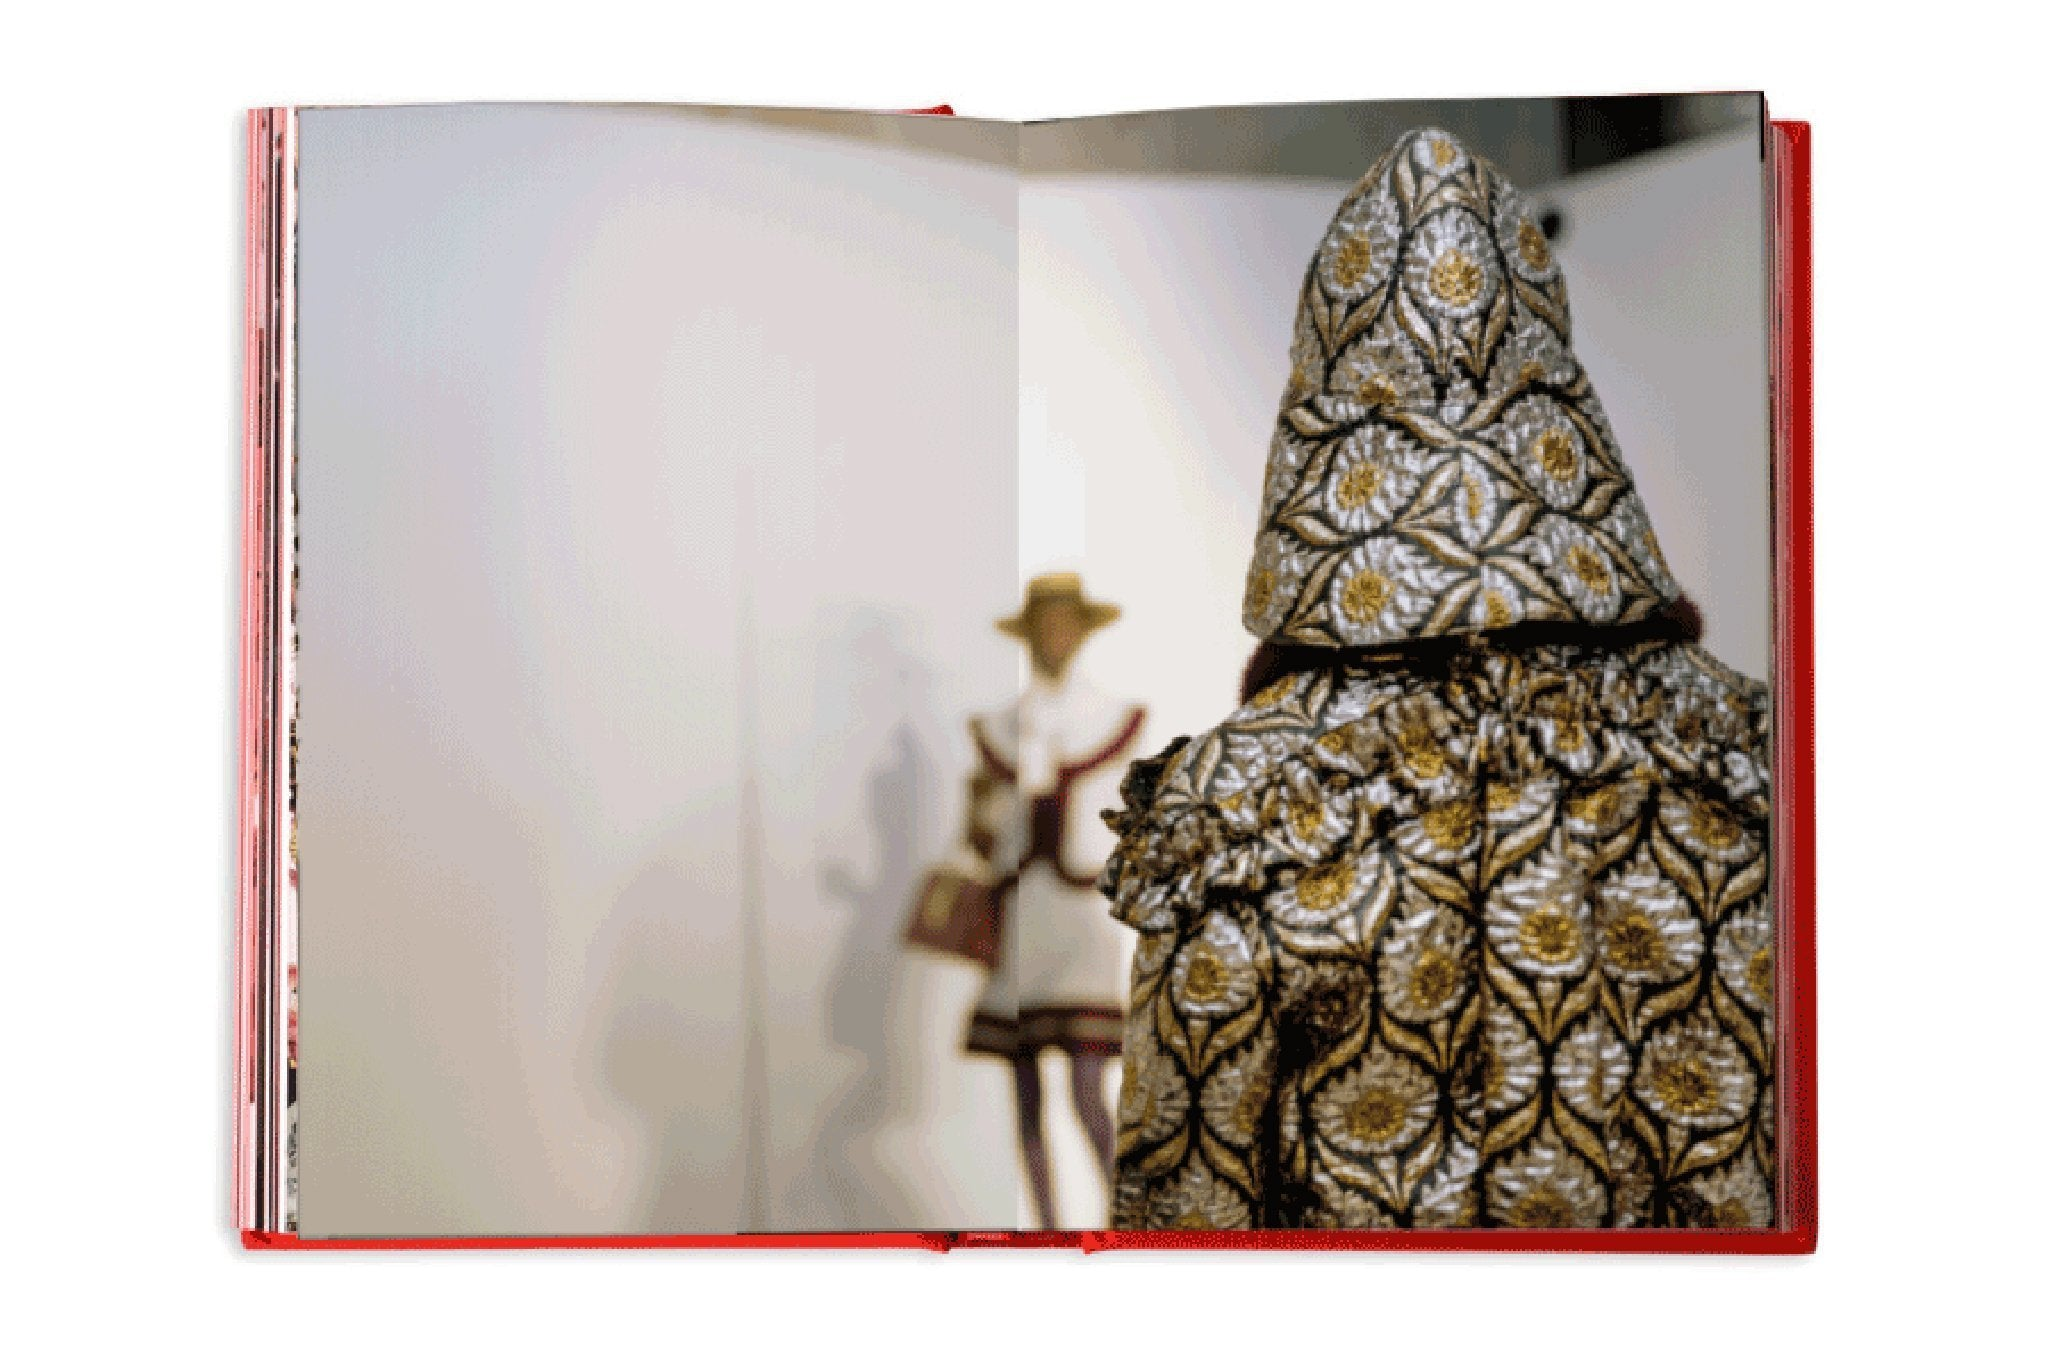 Gucci, Blind For Love - Assouline